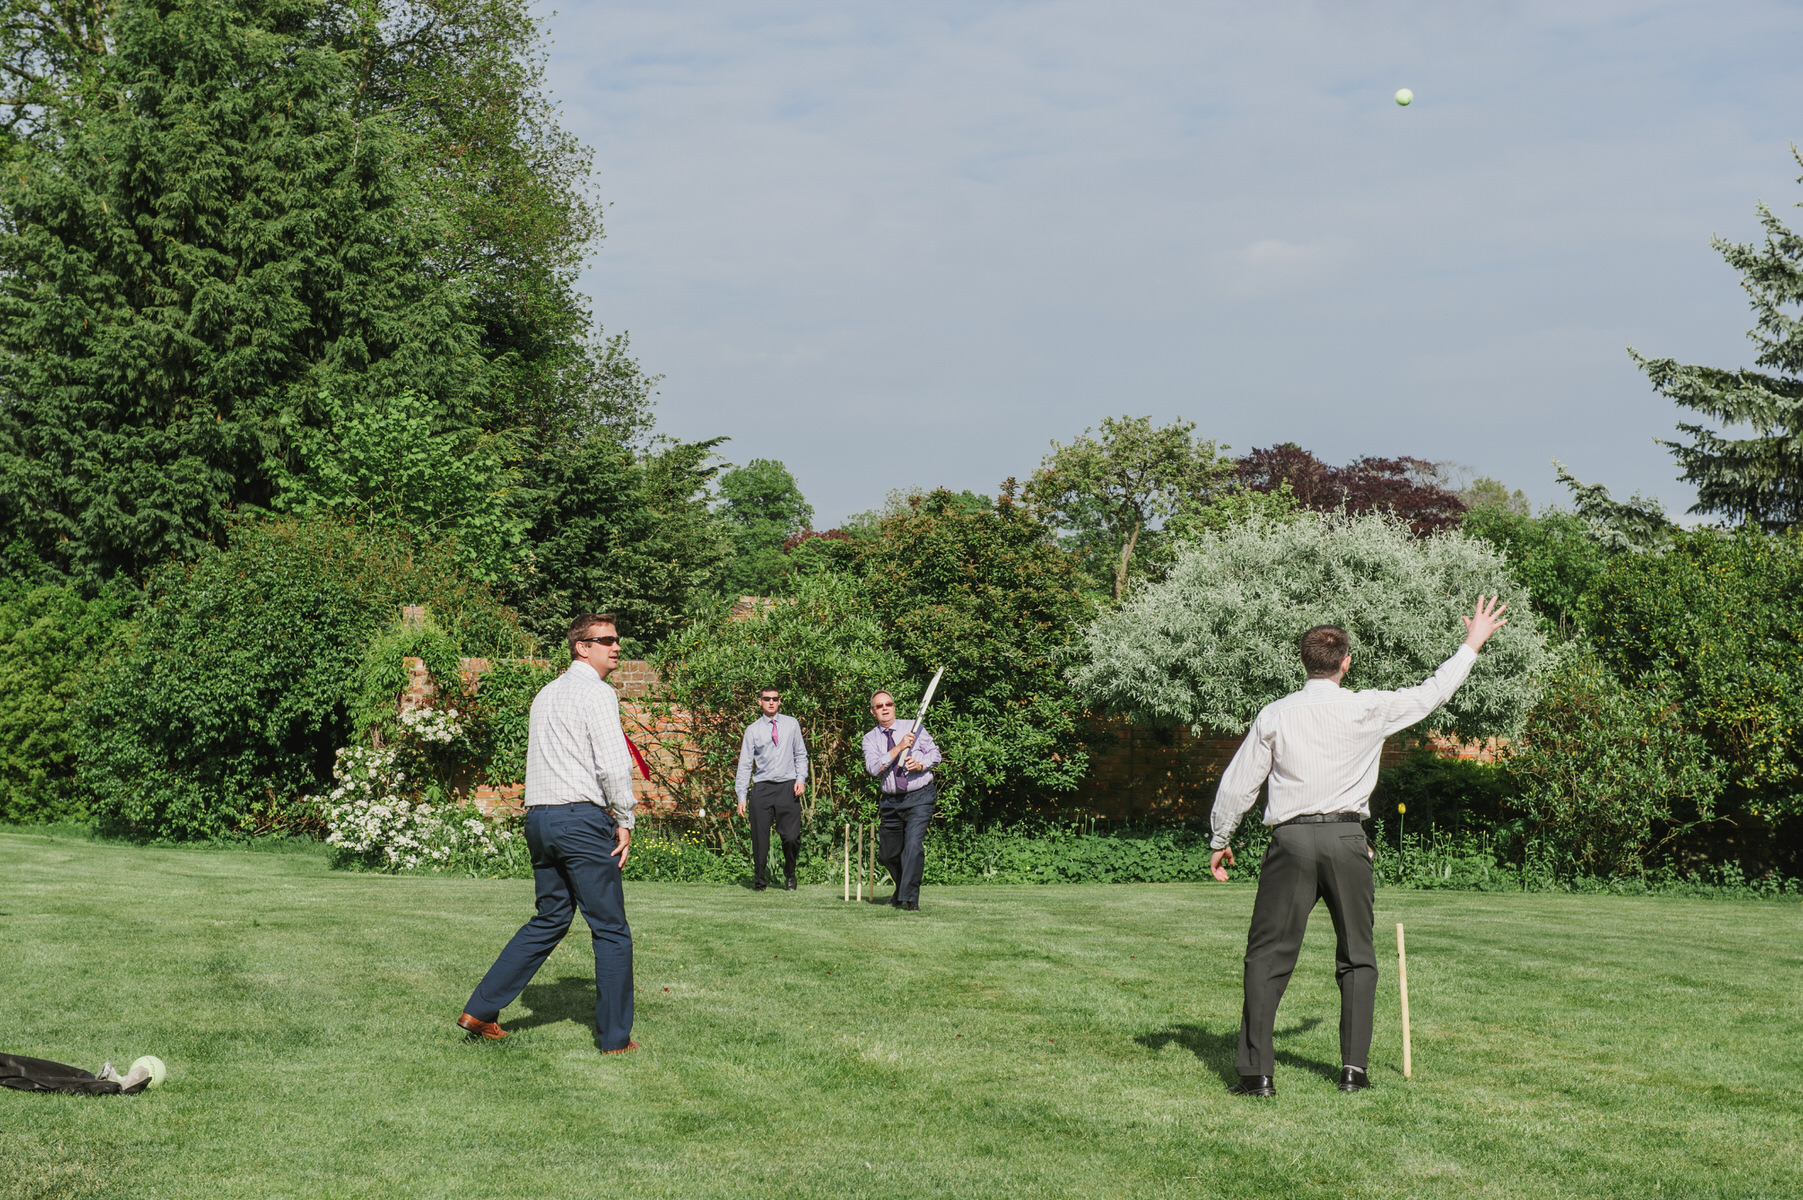 lawn games Herons Farm wedding